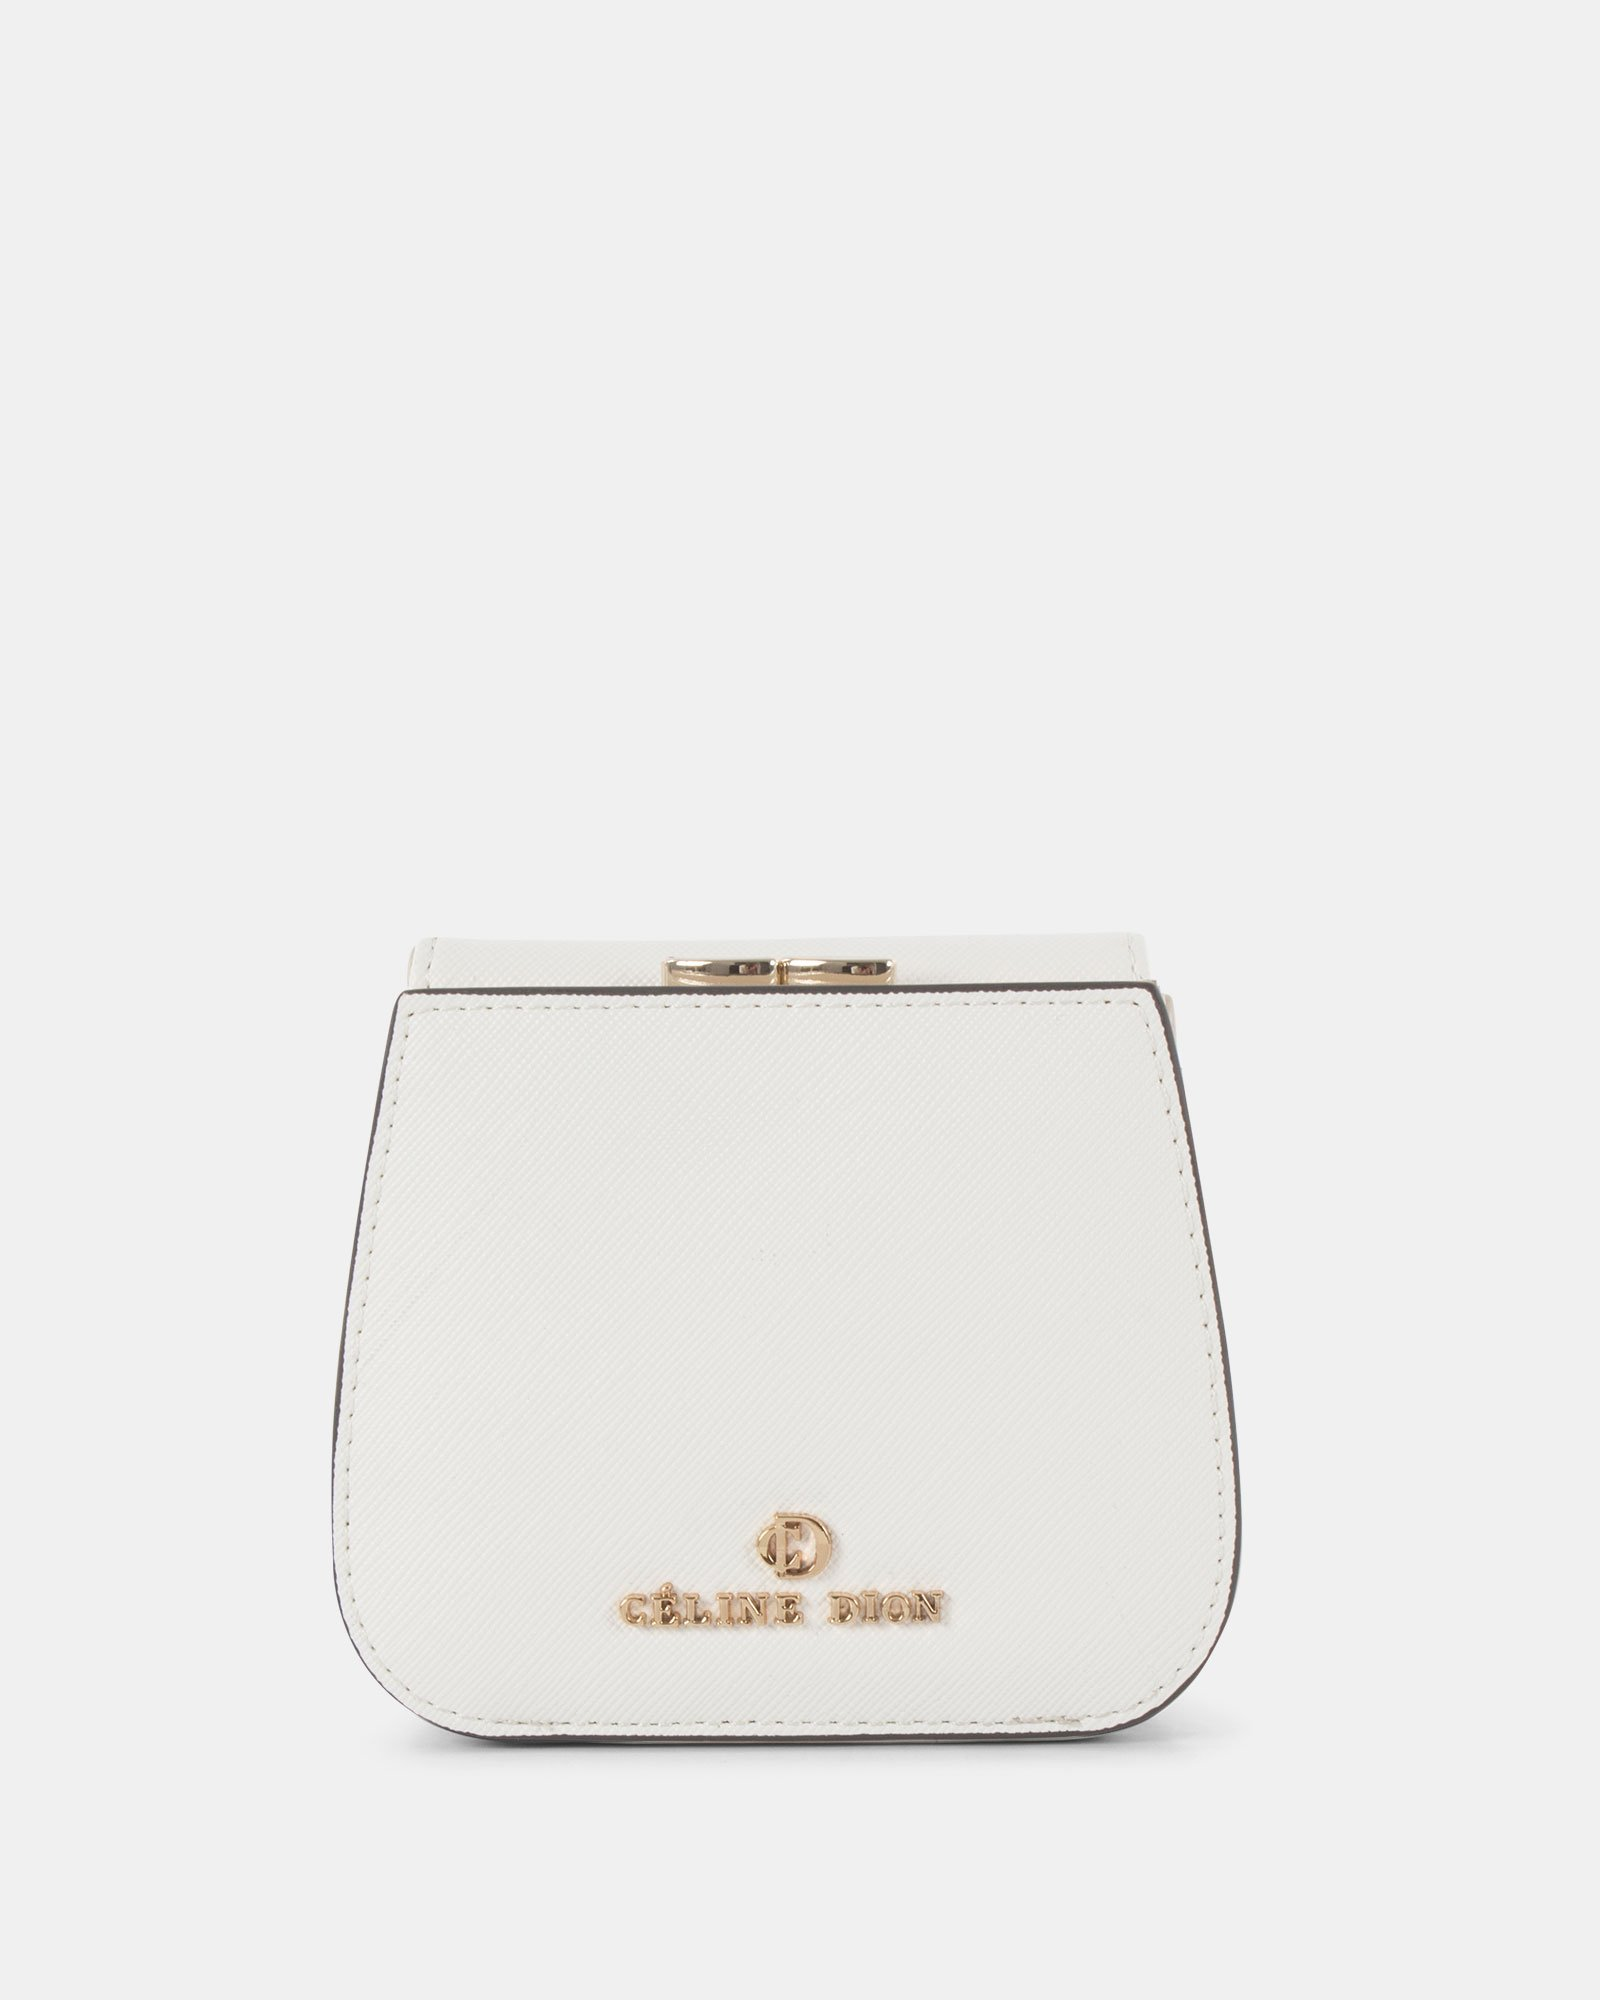 GRAZIOSO - Small rounded wallet with integrated coin clasp - white - Céline Dion - Zoom